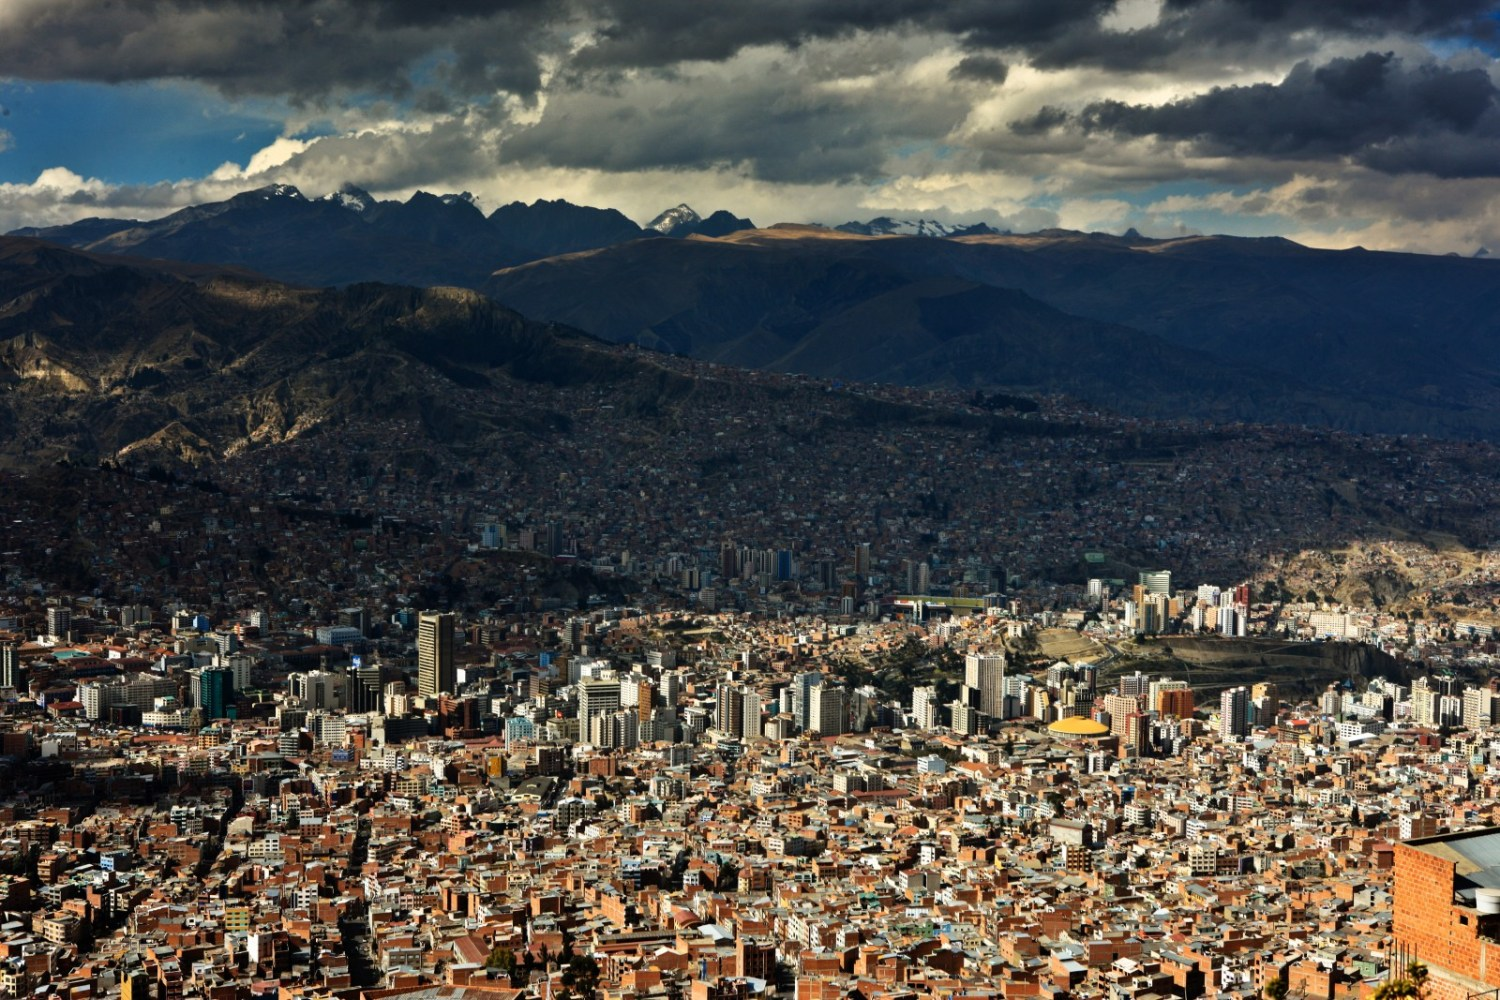 Water shortages in Bolivia forced officials to begin rationing supplies in La Paz, a metropolitan area home to more than 2 million people. Photo courtesy Cliff Hellis / Flickr Creative Commons.